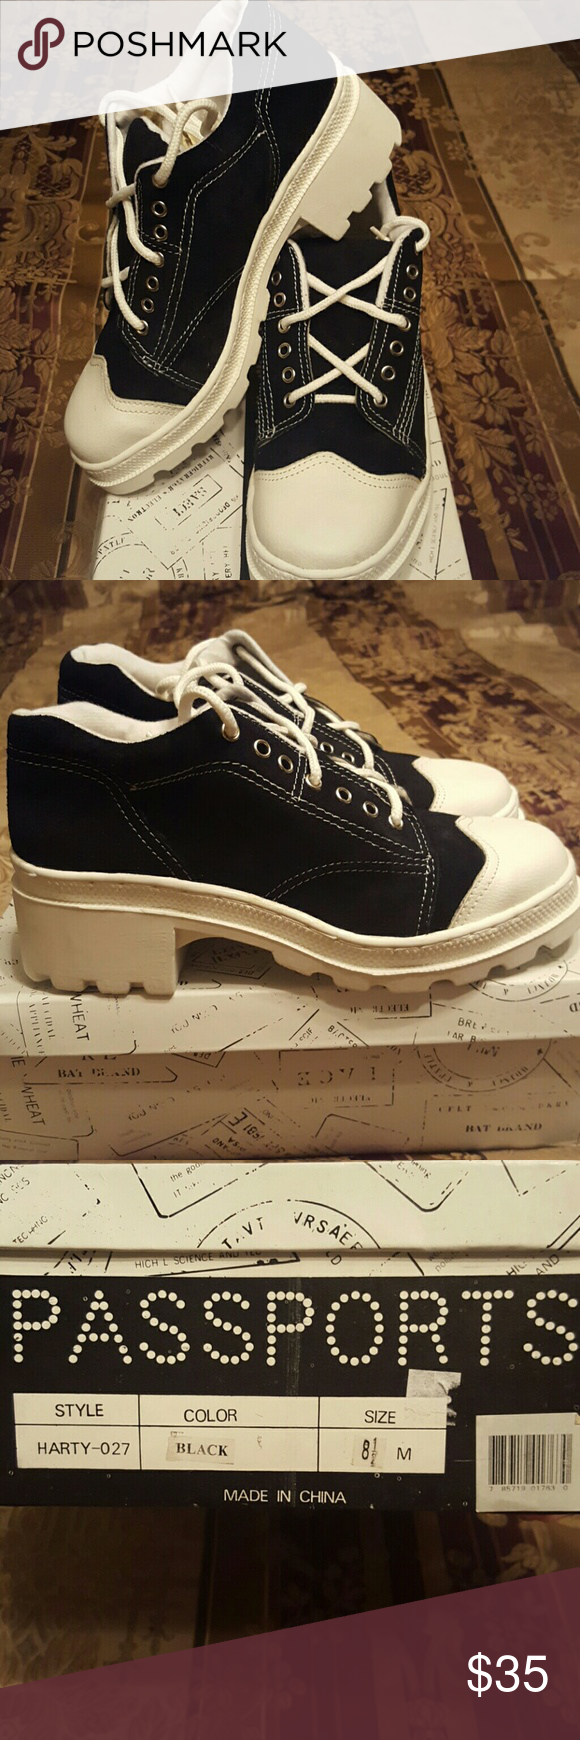 Black/White Platform Type Tennis Shoes Super cute and trendy heeled tennis shoes. Never worn!! Passports Shoes Platforms